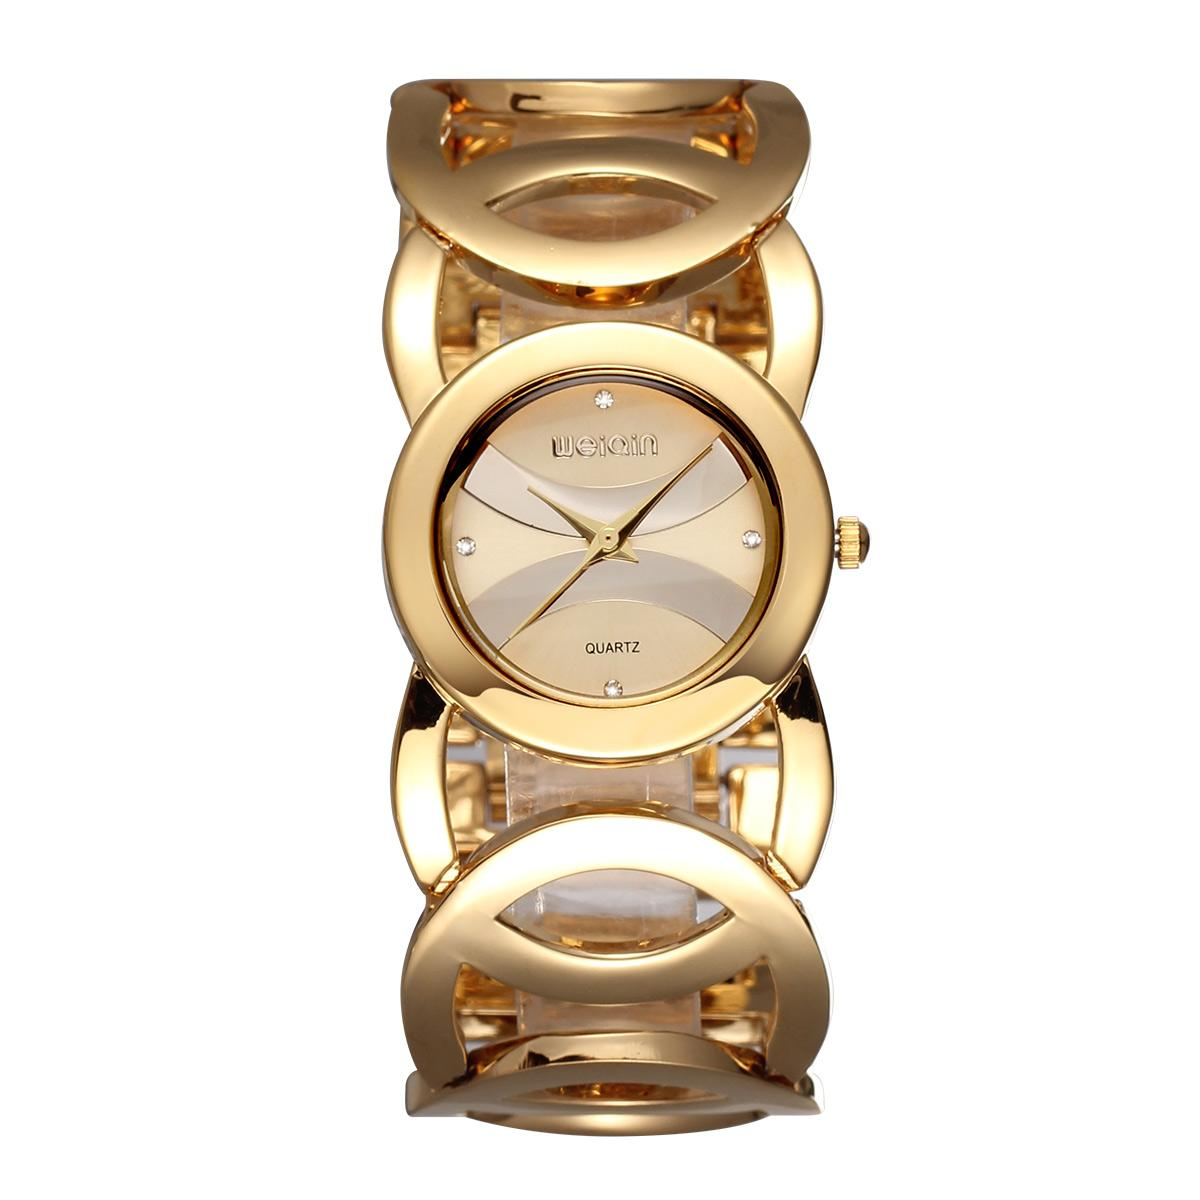 292f58b9057 Weiqin Women watch Full Stainless Steel Quartz Wristwatches ladies hour  248702(Gold) - intl